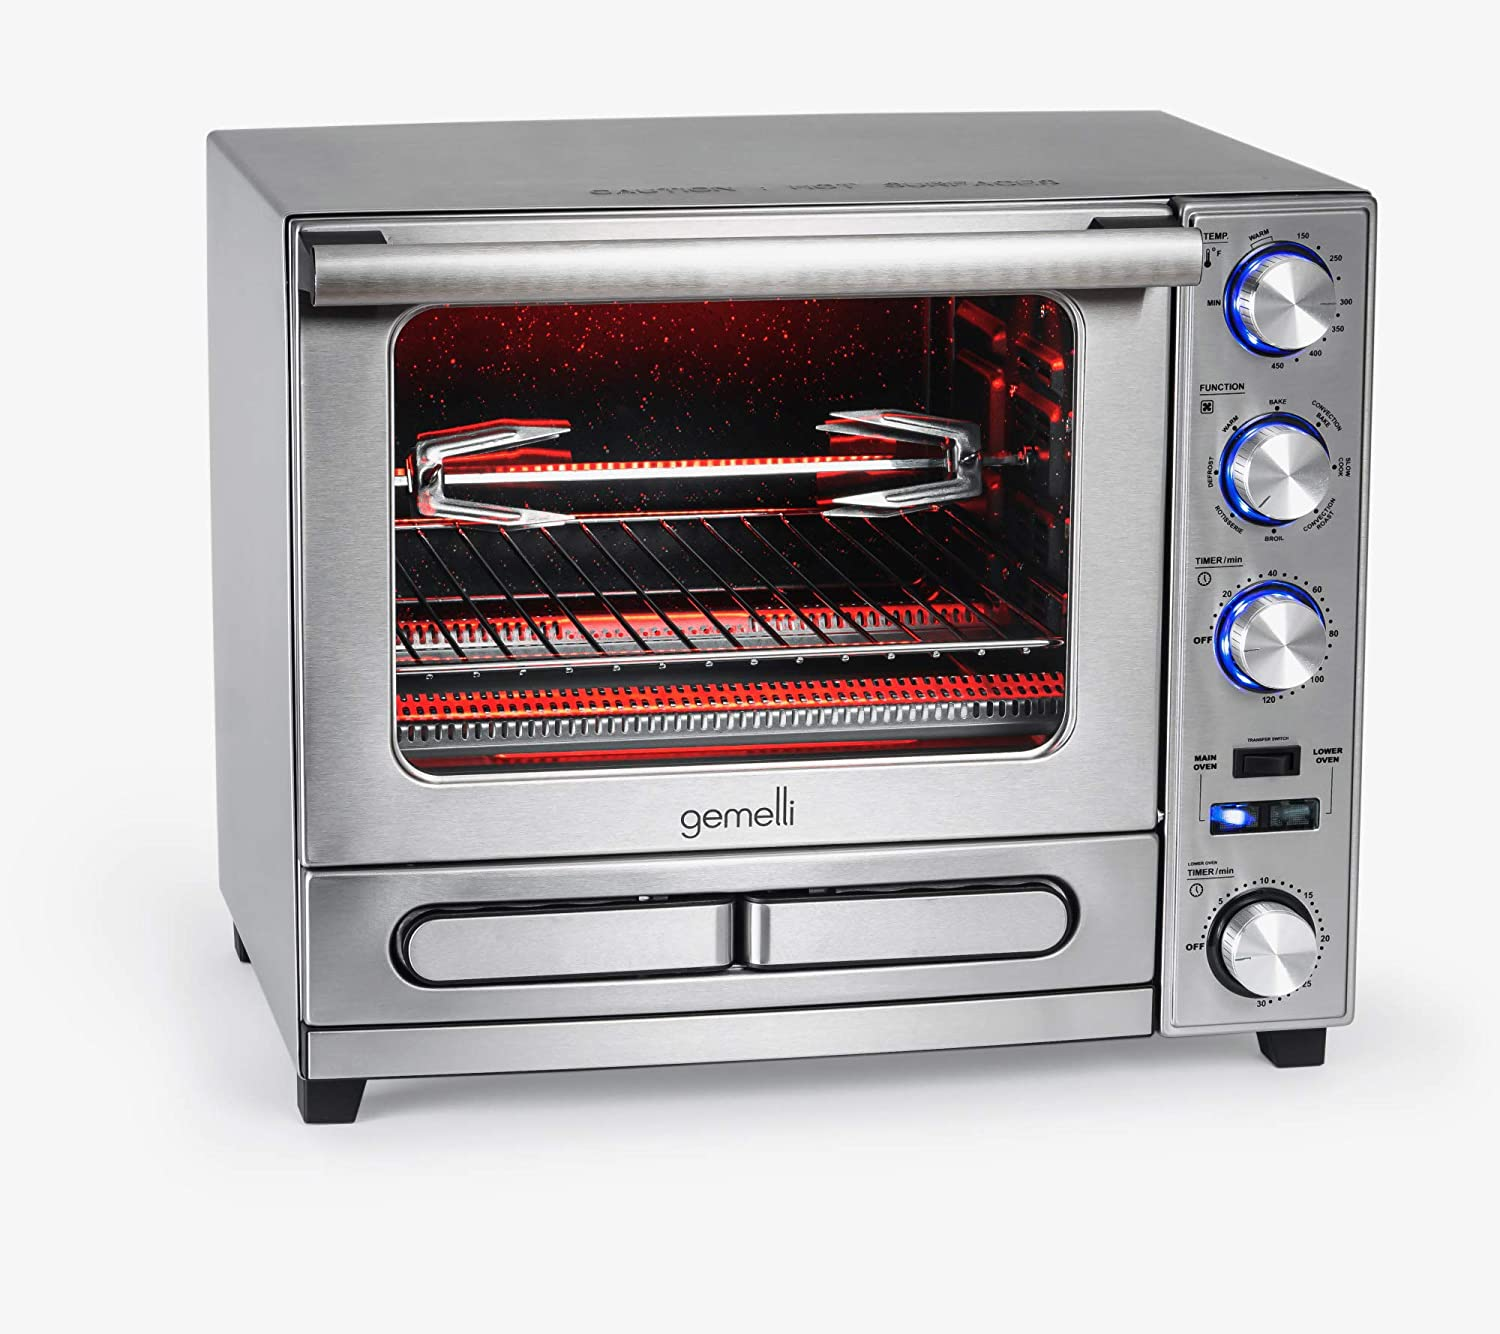 The Gemelli Twin Oven, Convection Oven with Built-In Pizza Drawer and Rotisserie, Countertop Sized, Stainless Steel Finish